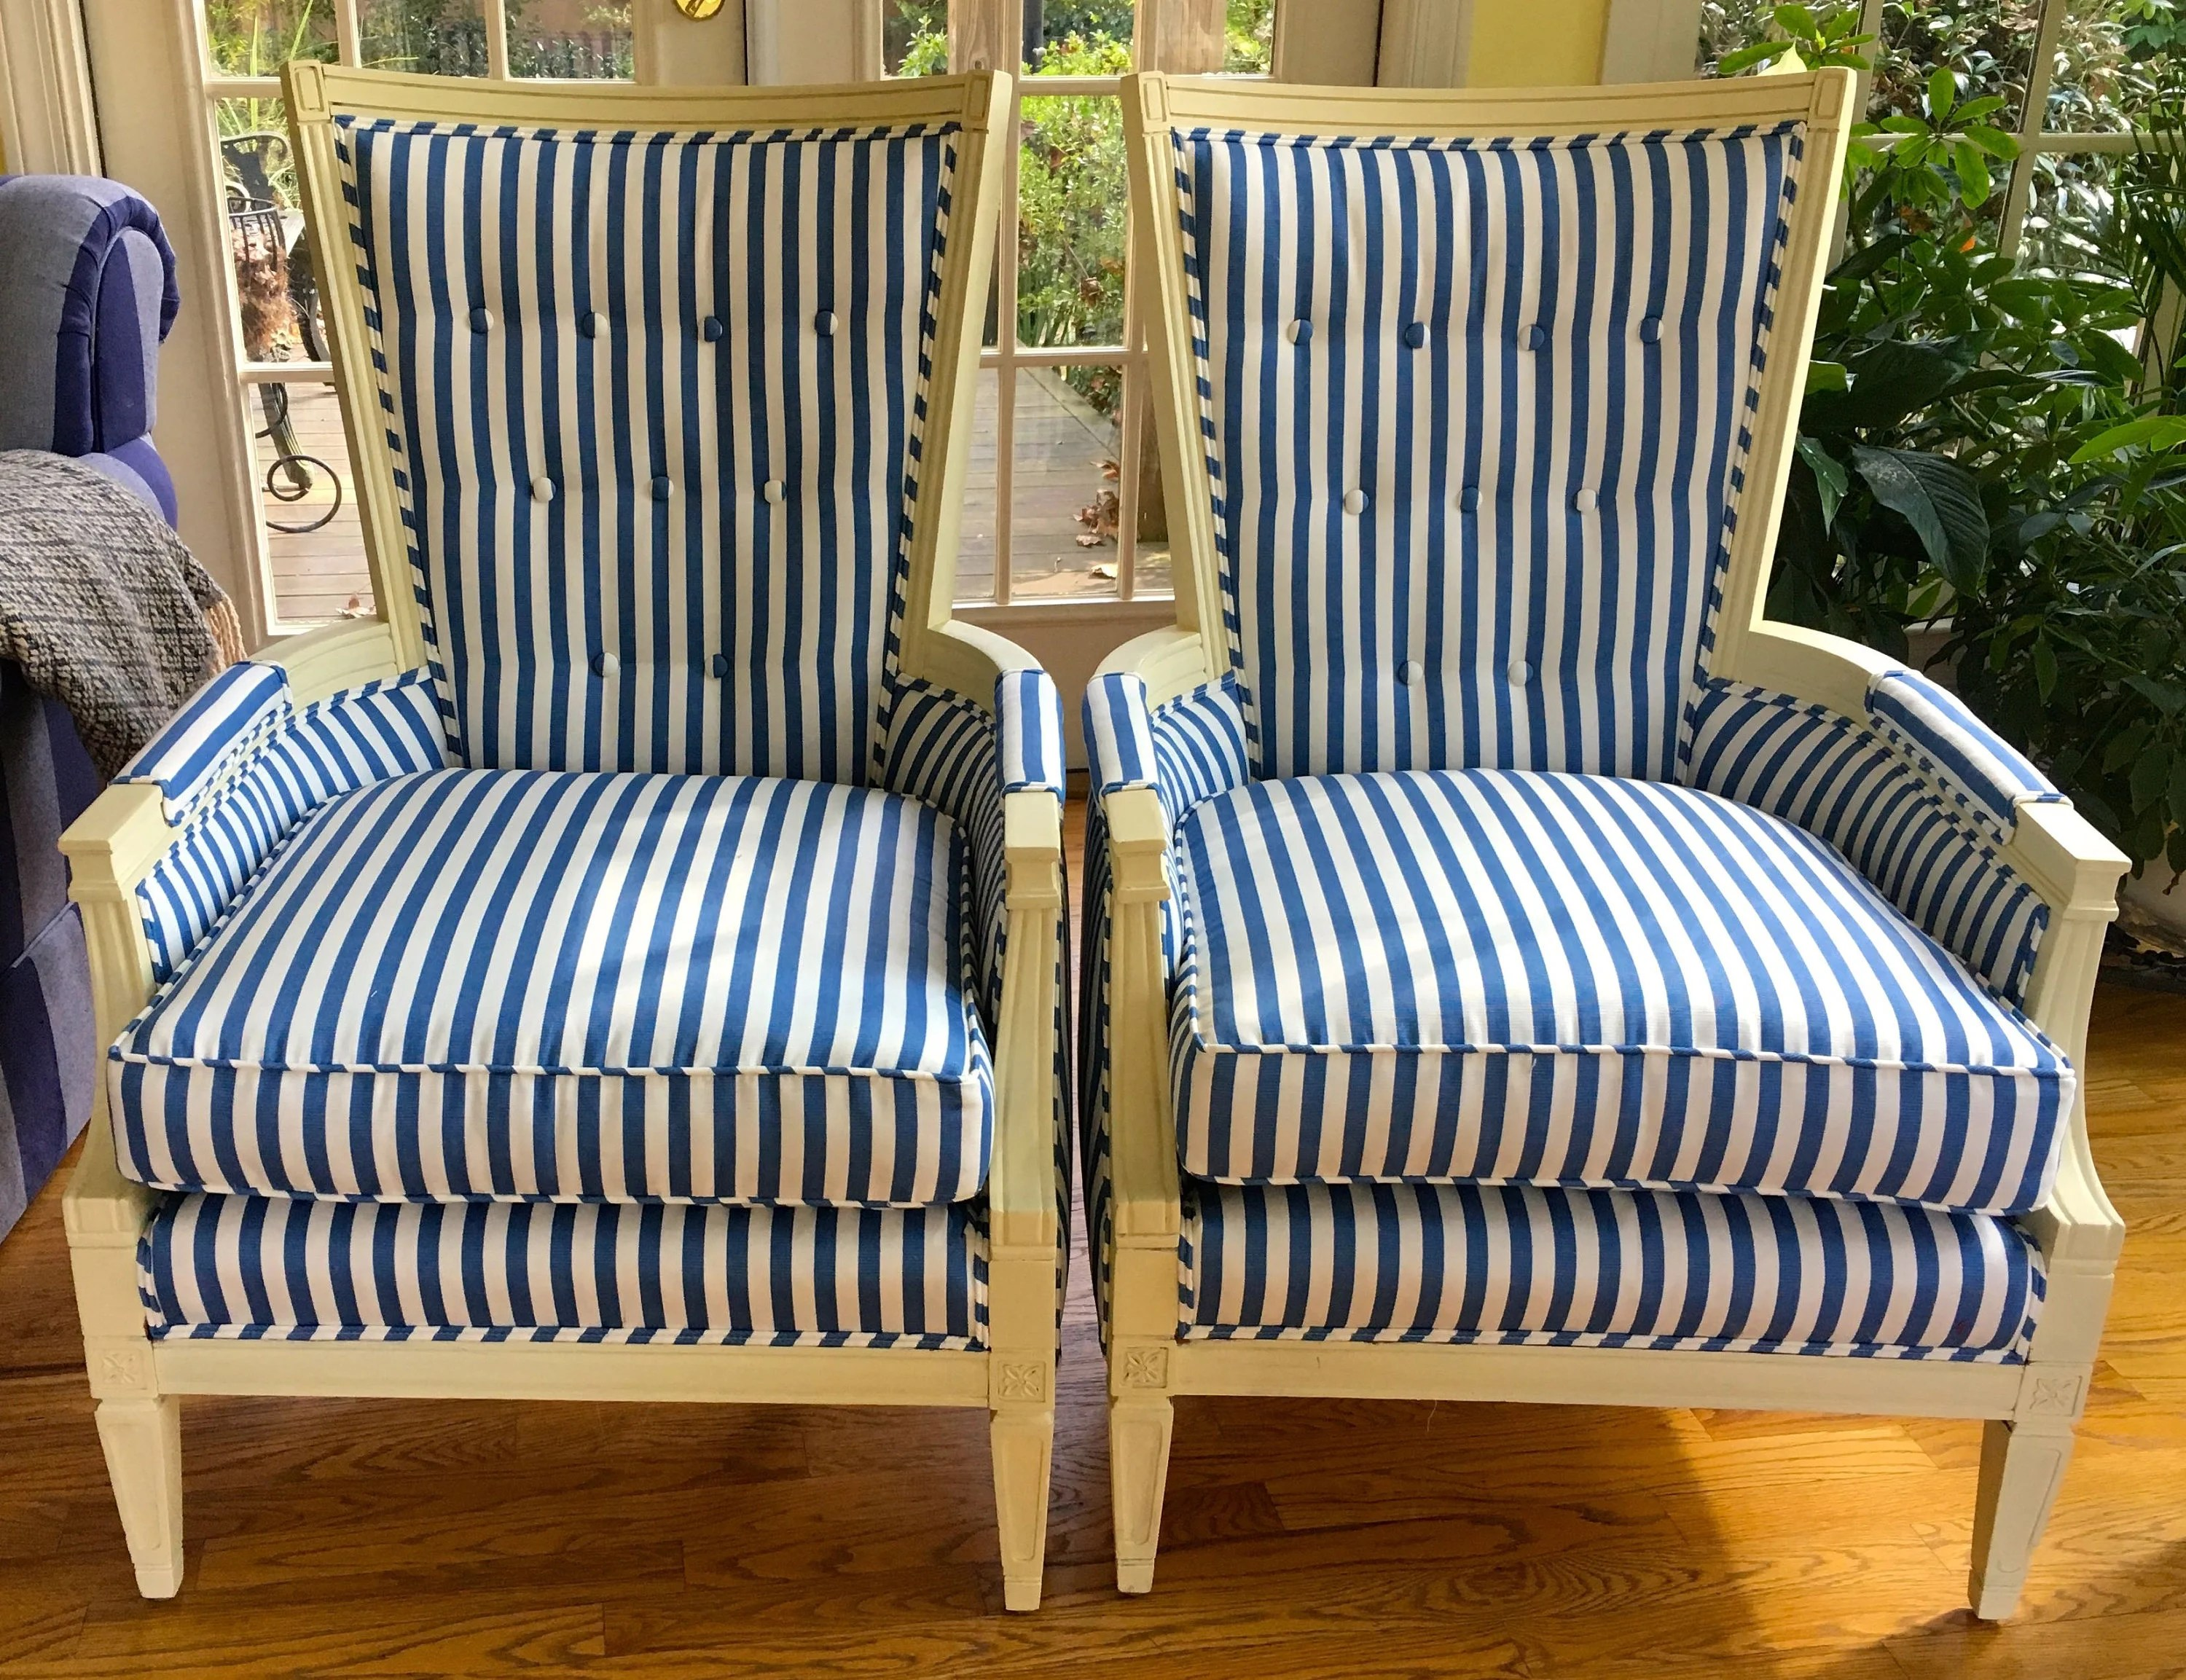 blue and white striped chair banquet covers toronto pair of french style chairs with buttoned etsy image 0